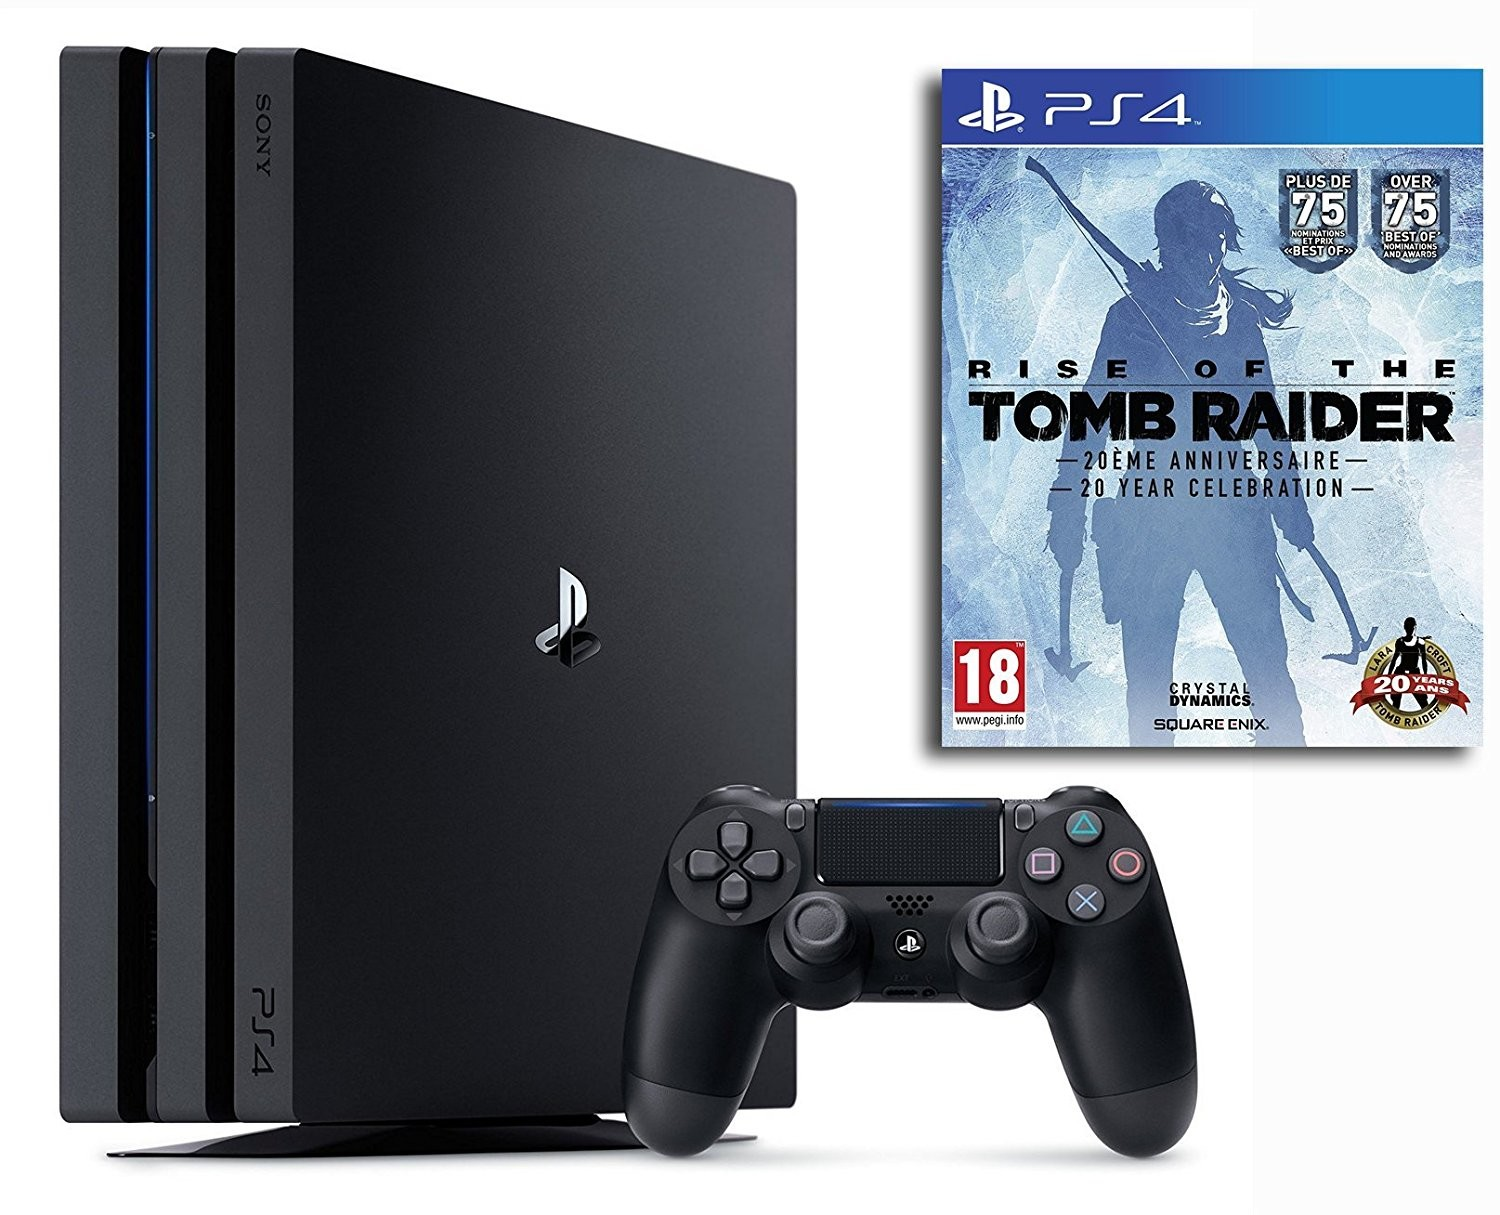 bon plan ps4 pro pas cher avec rise of the tomb raider offert. Black Bedroom Furniture Sets. Home Design Ideas